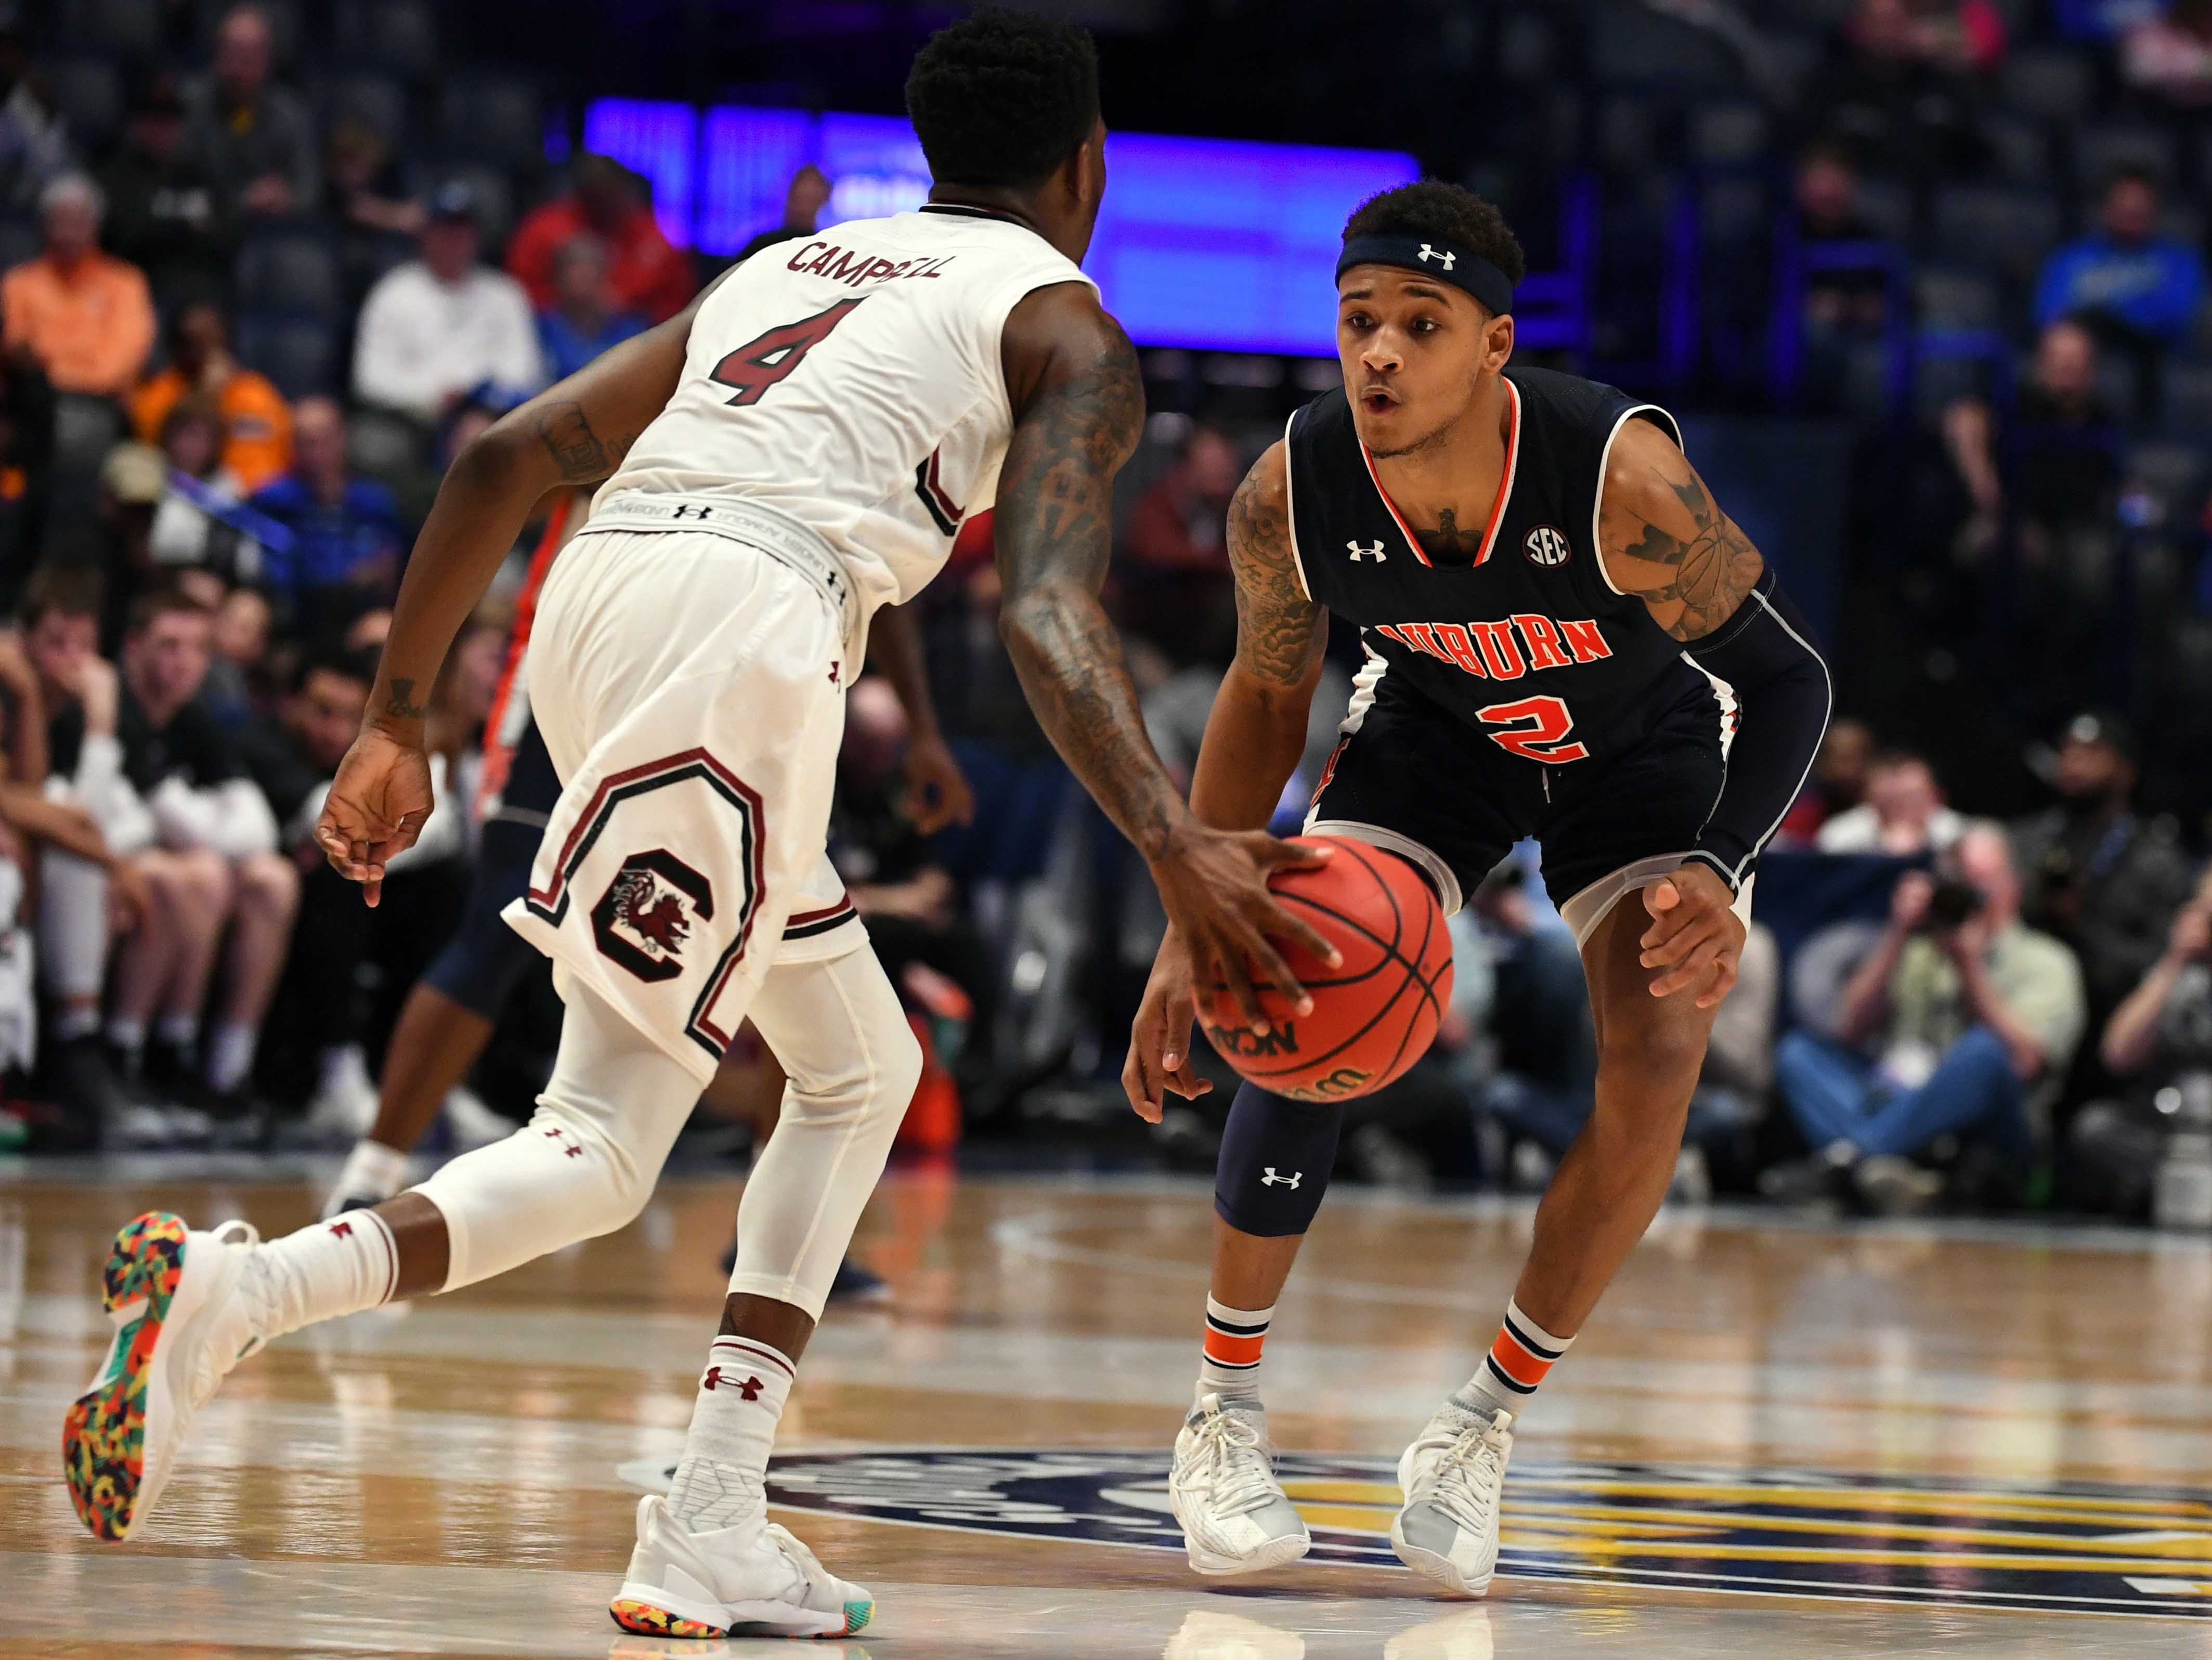 Mar 15, 2019; Nashville, TN, USA; South Carolina Gamecocks guard Tre Campbell (4) is defended by Auburn Tigers guard Bryce Brown (2) during the second half of the SEC conference tournament at Bridgestone Arena. Mandatory Credit: Christopher Hanewinckel-USA TODAY Sports